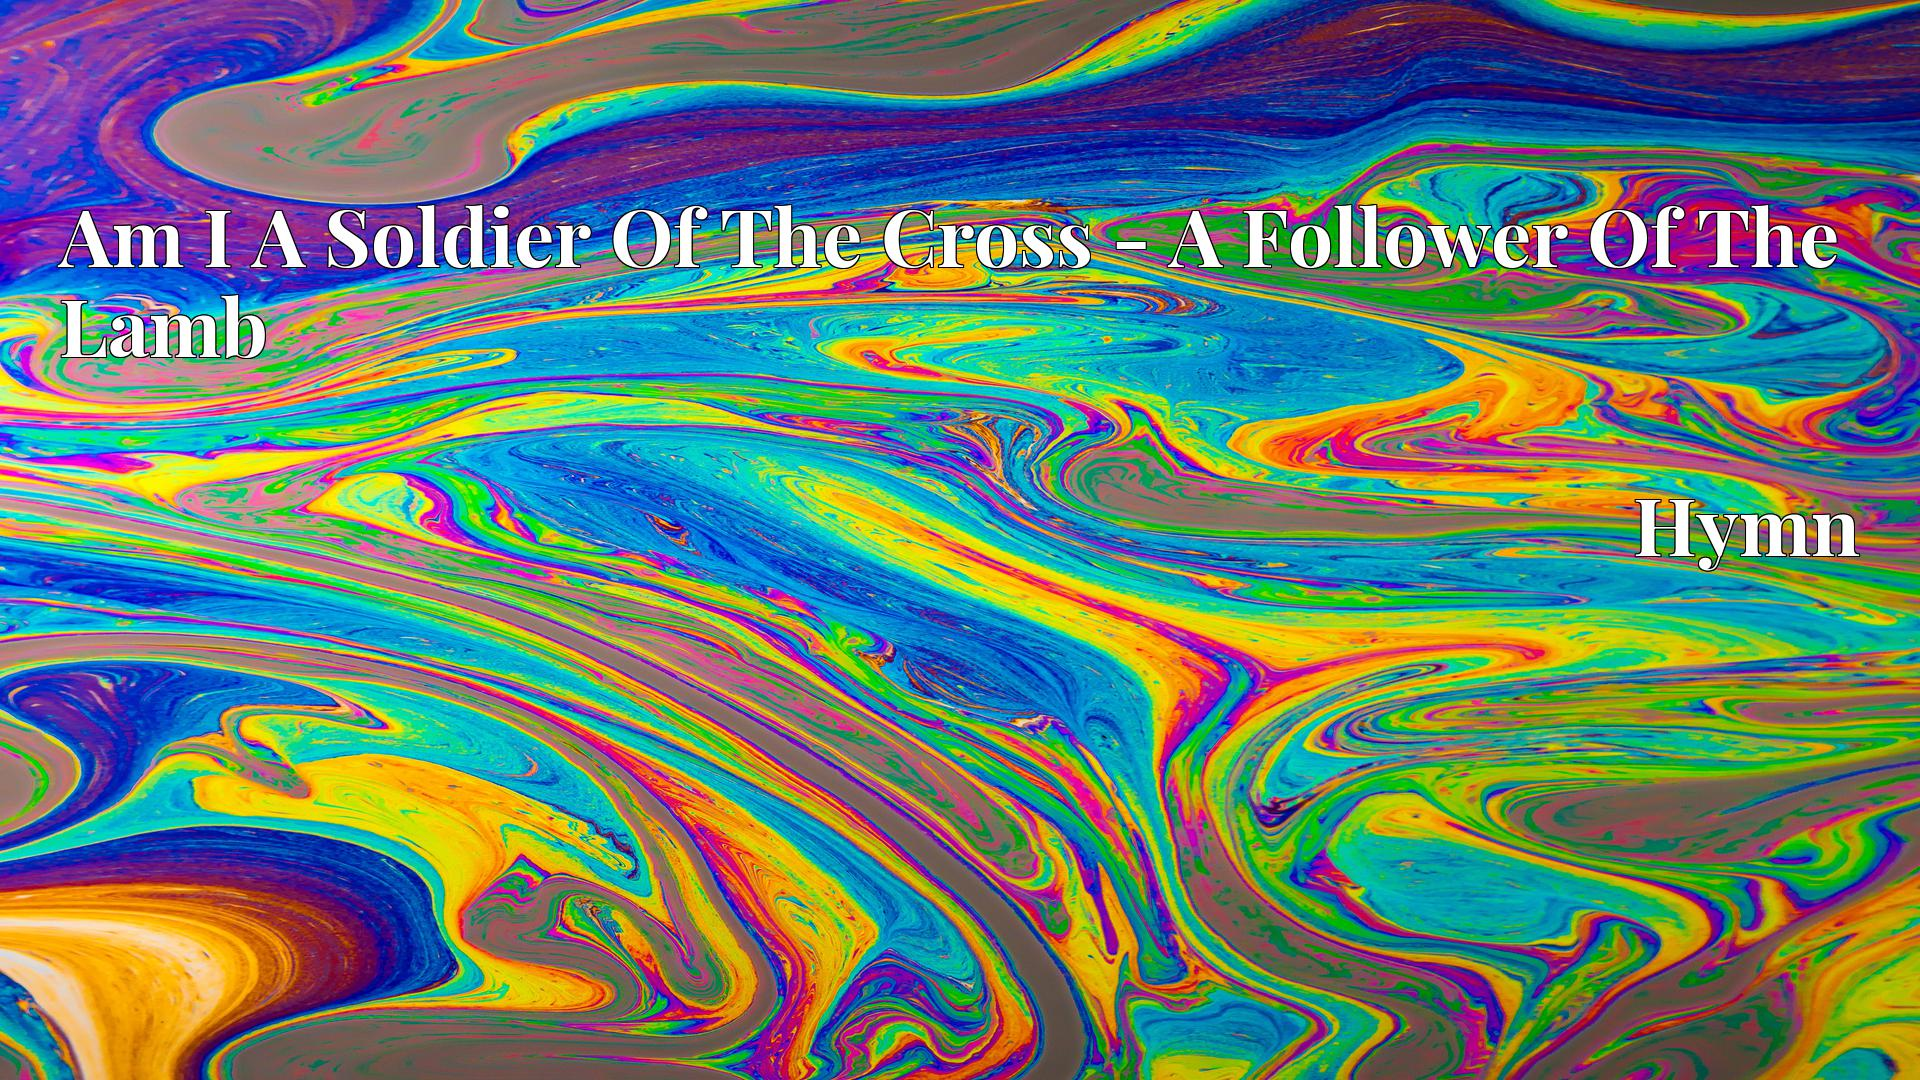 Am I A Soldier Of The Cross - A Follower Of The Lamb - Hymn